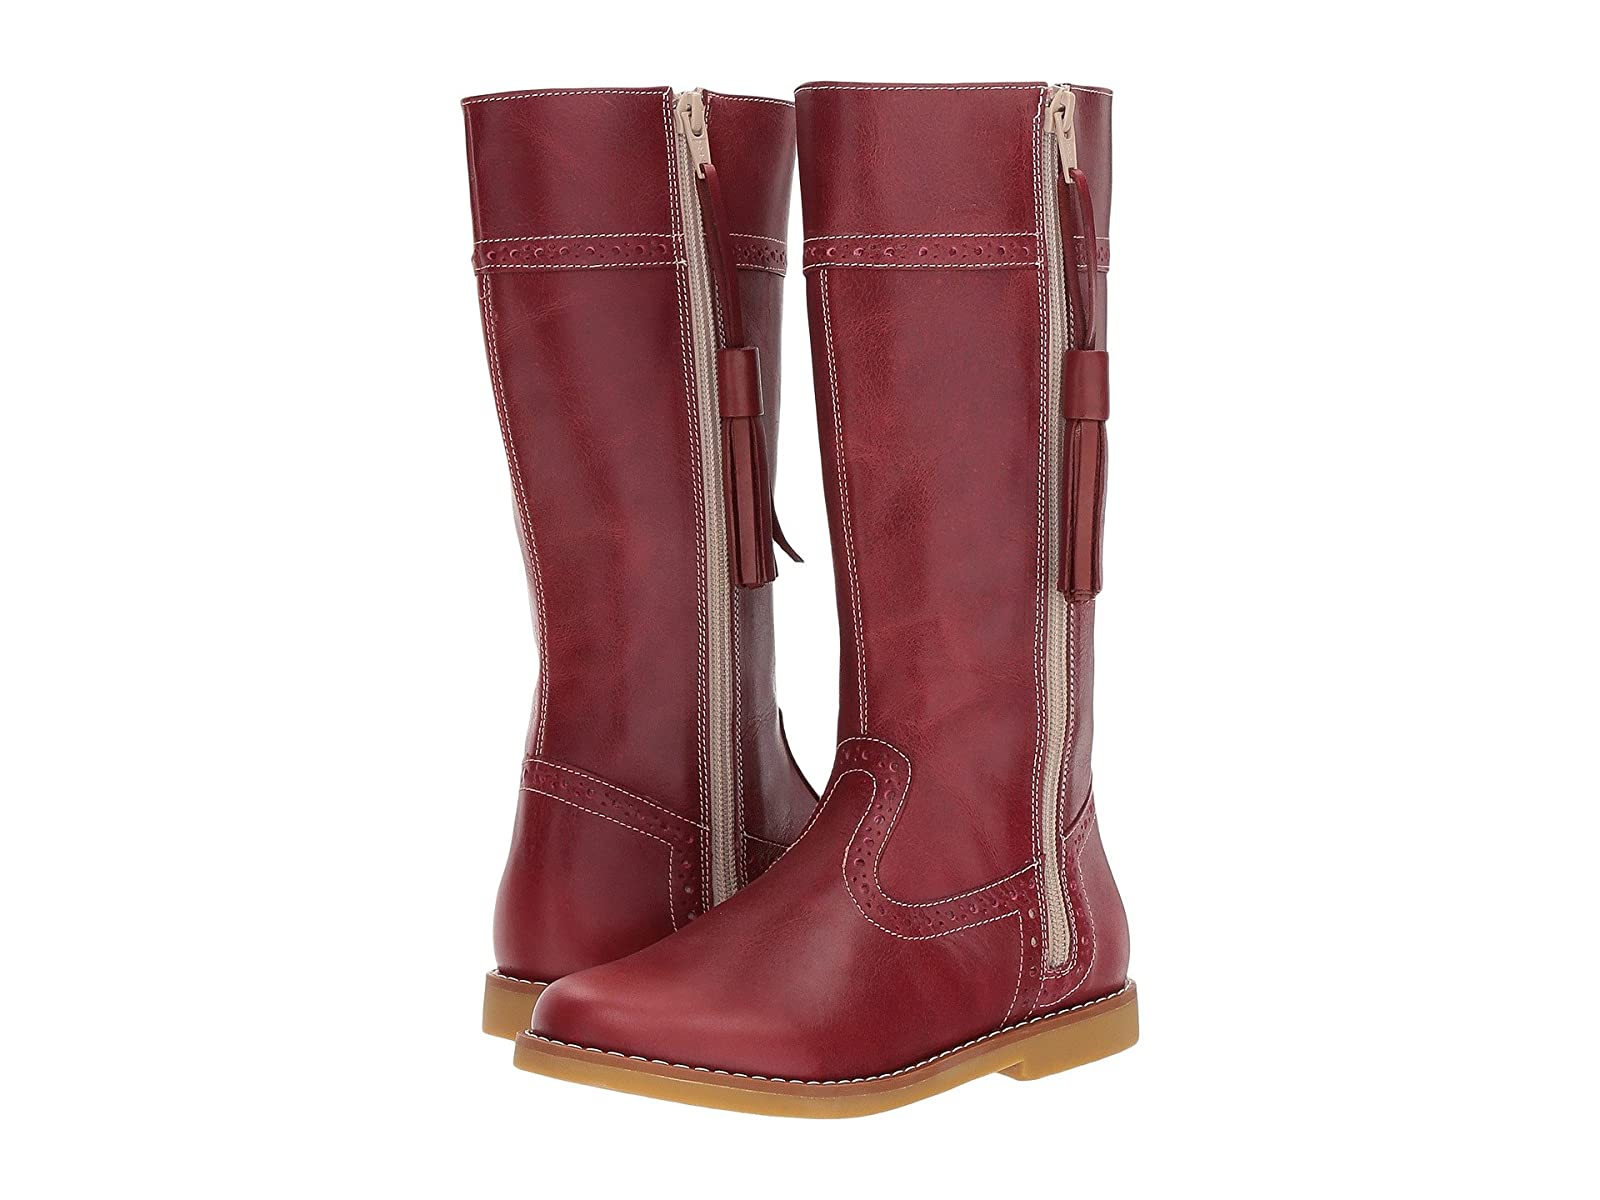 Elephantito Riding Boot (Toddler/Little Kid/Big Kid)Affordable and distinctive shoes